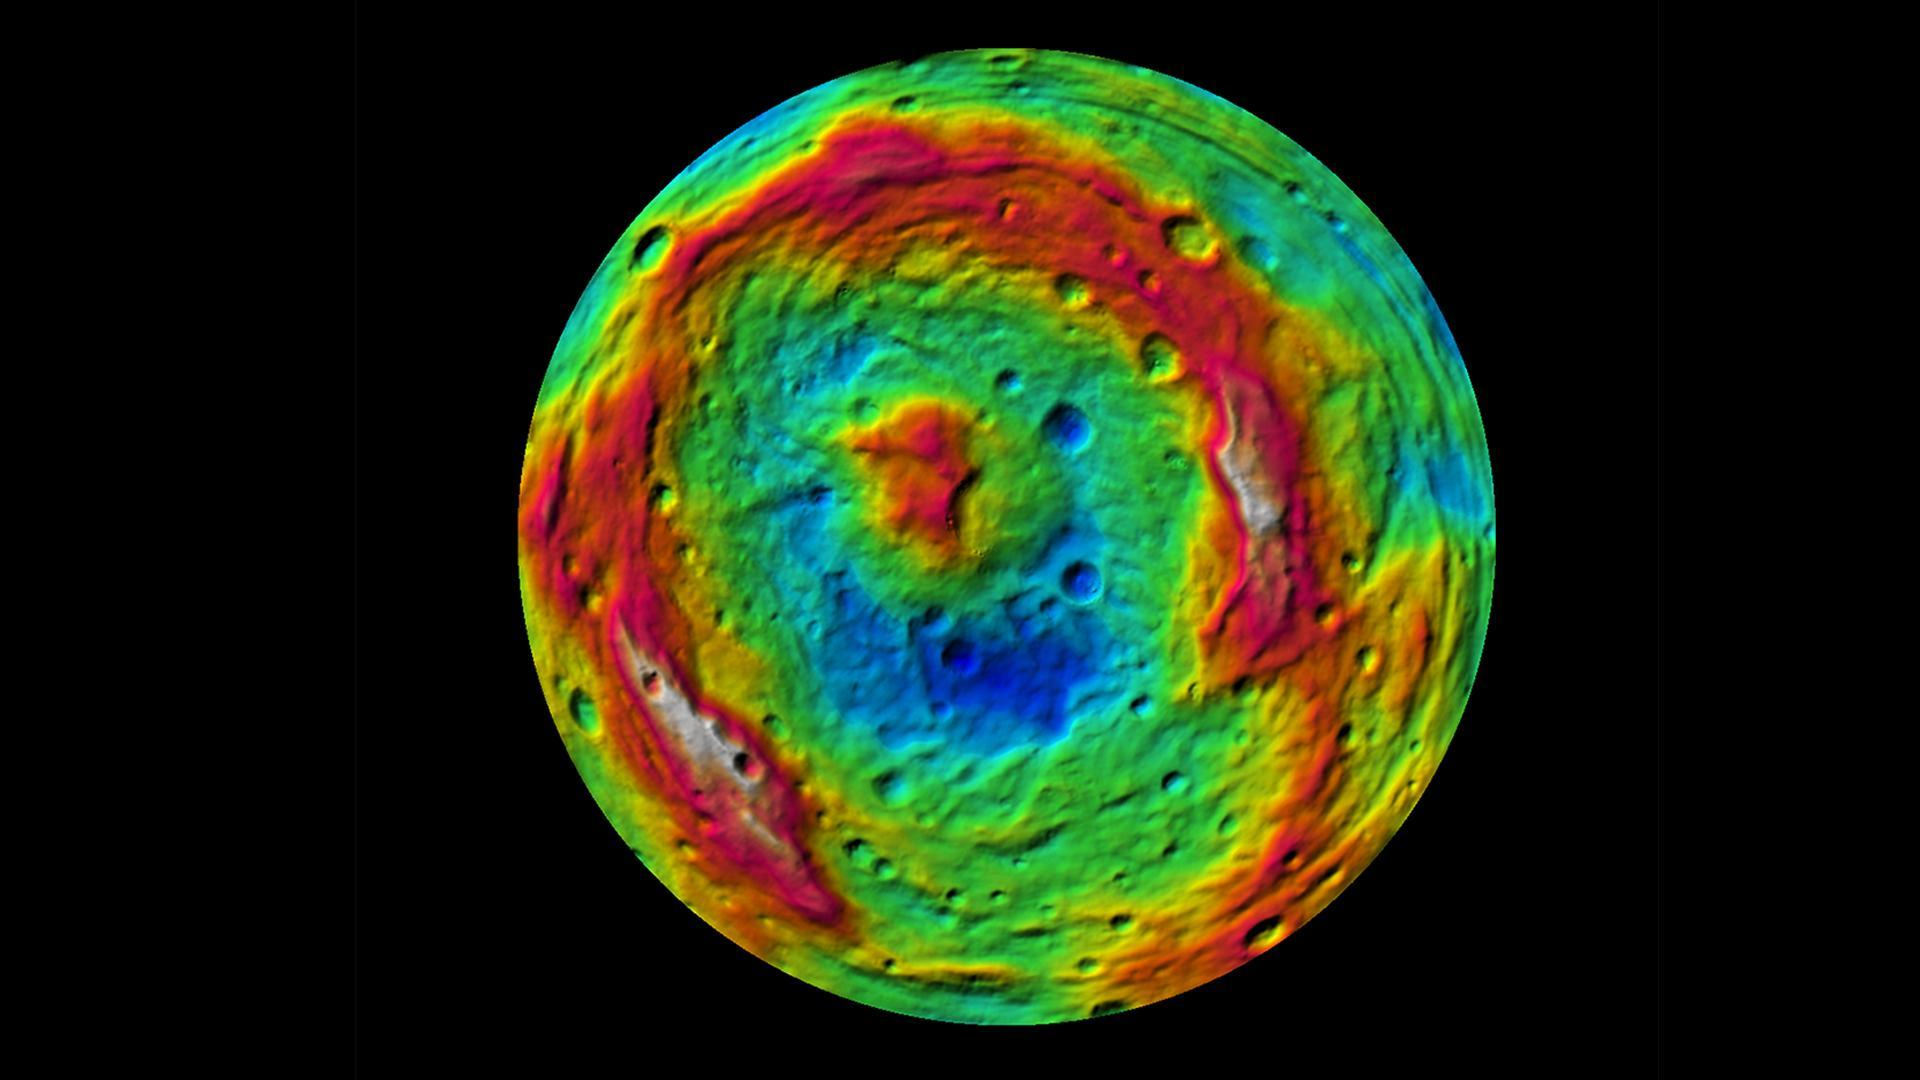 The topography of Vesta's south pole